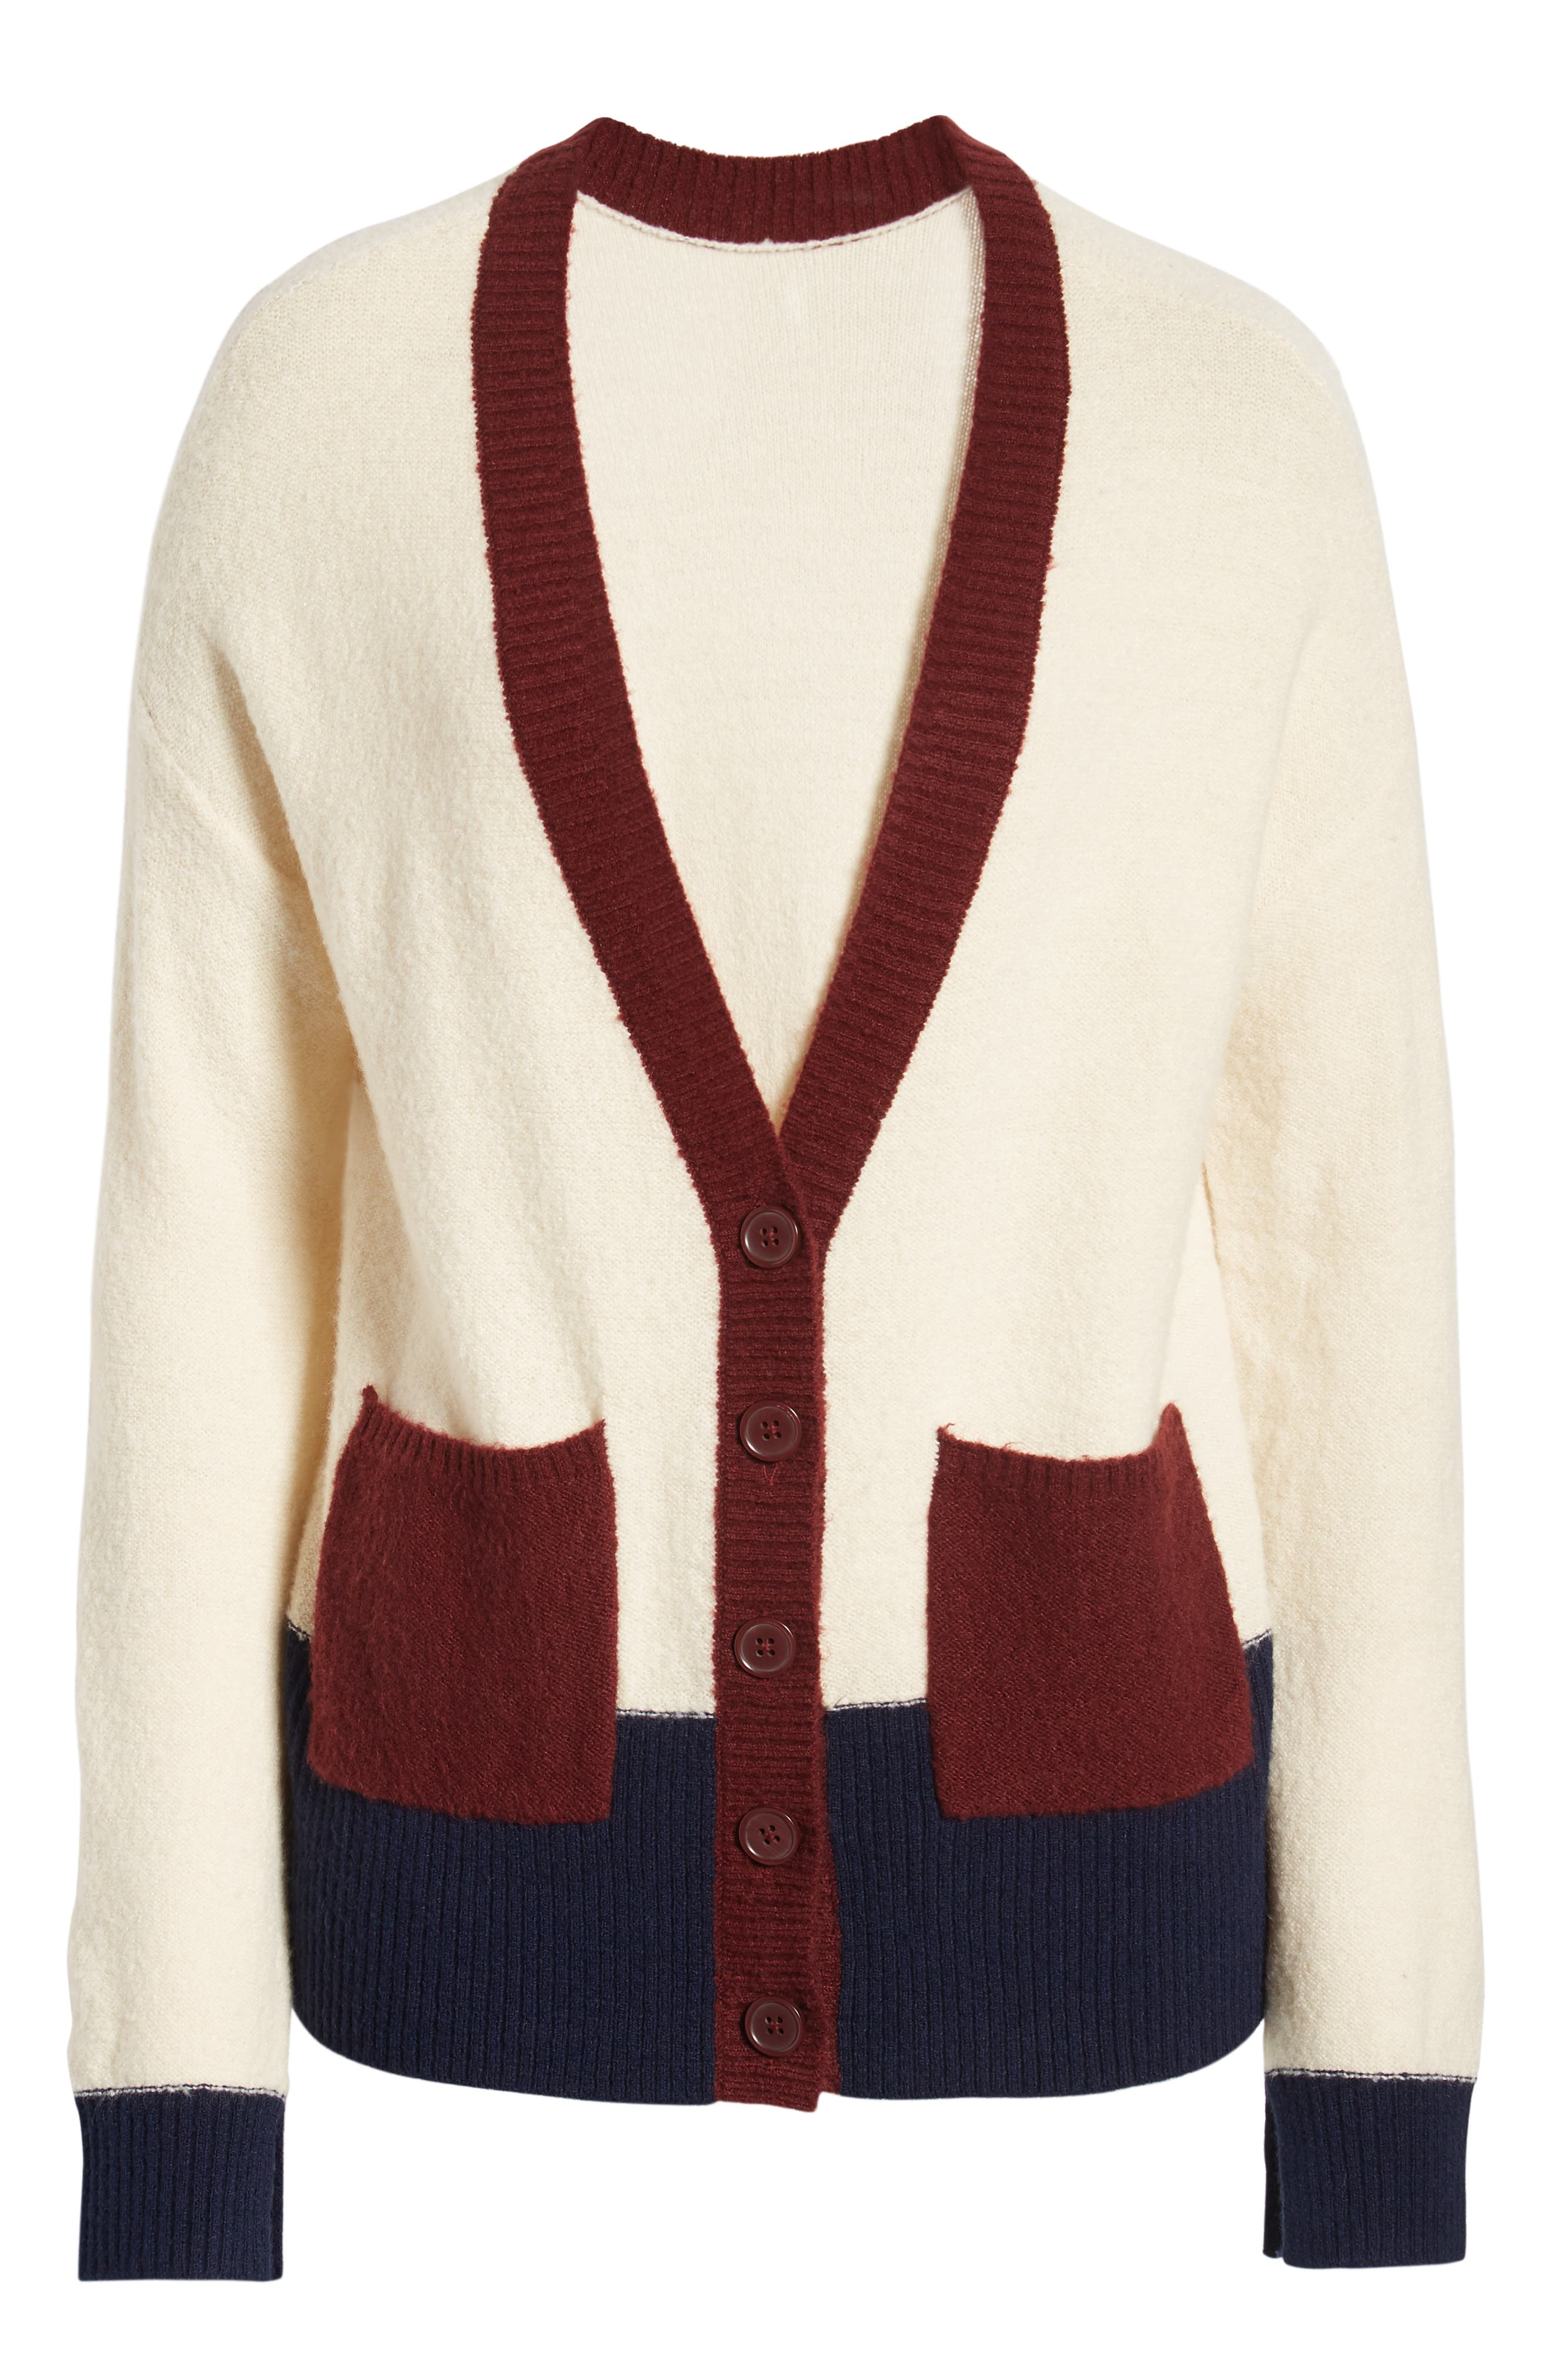 Colorblock V-Neck Cardigan,                             Alternate thumbnail 6, color,                             BEIGE OATMEAL LIGHT HEATHER